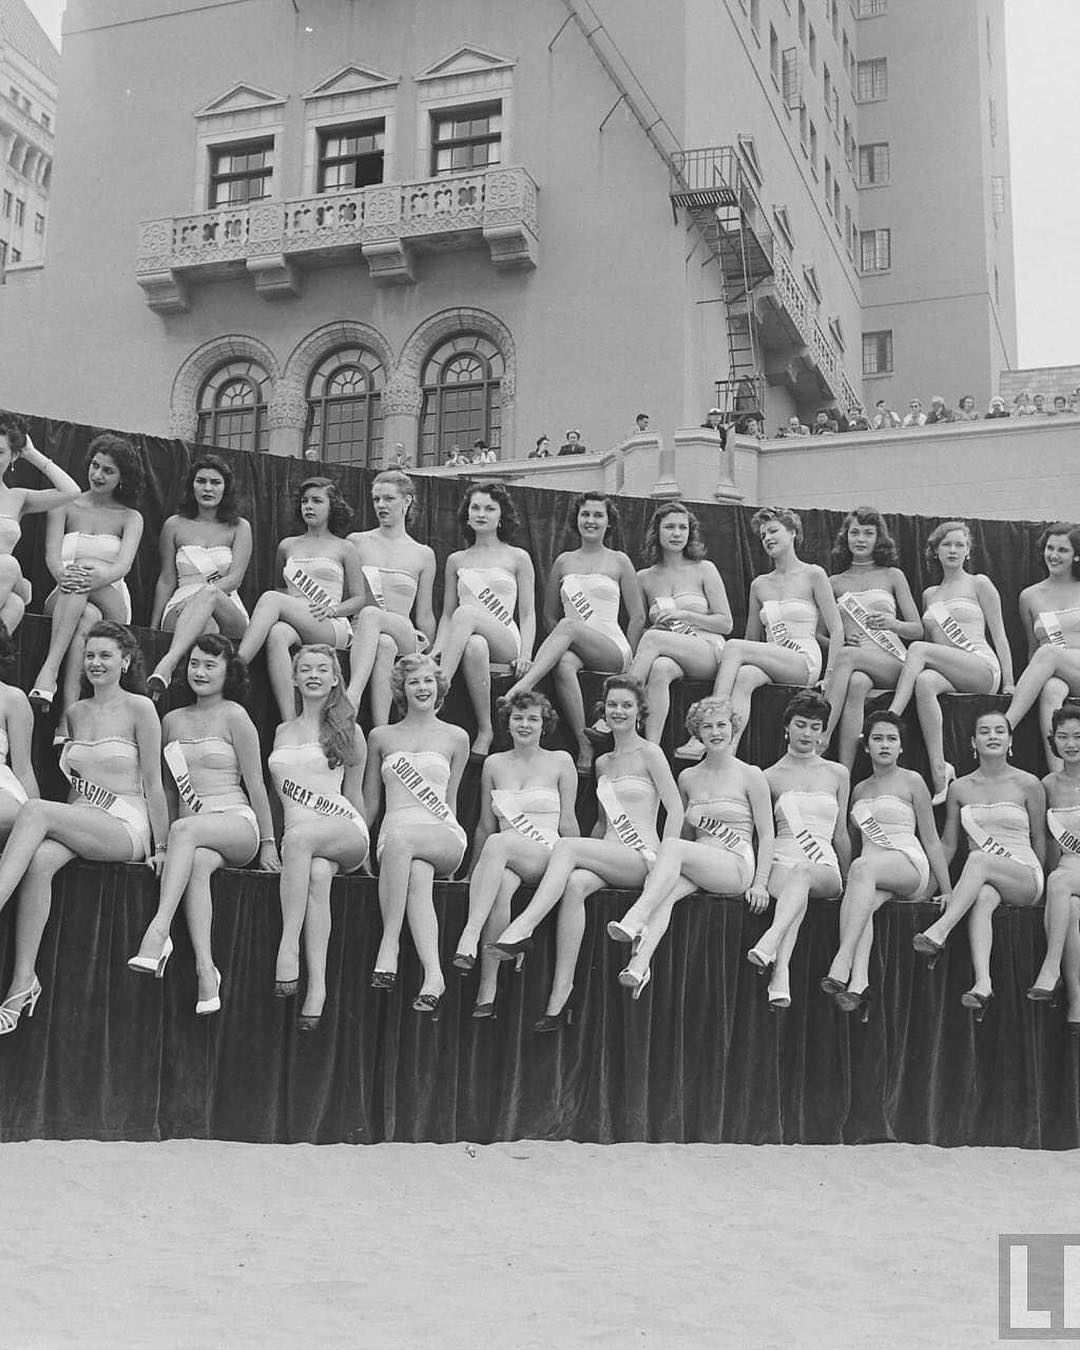 Candidates of the first Miss Universe pageant, 1952